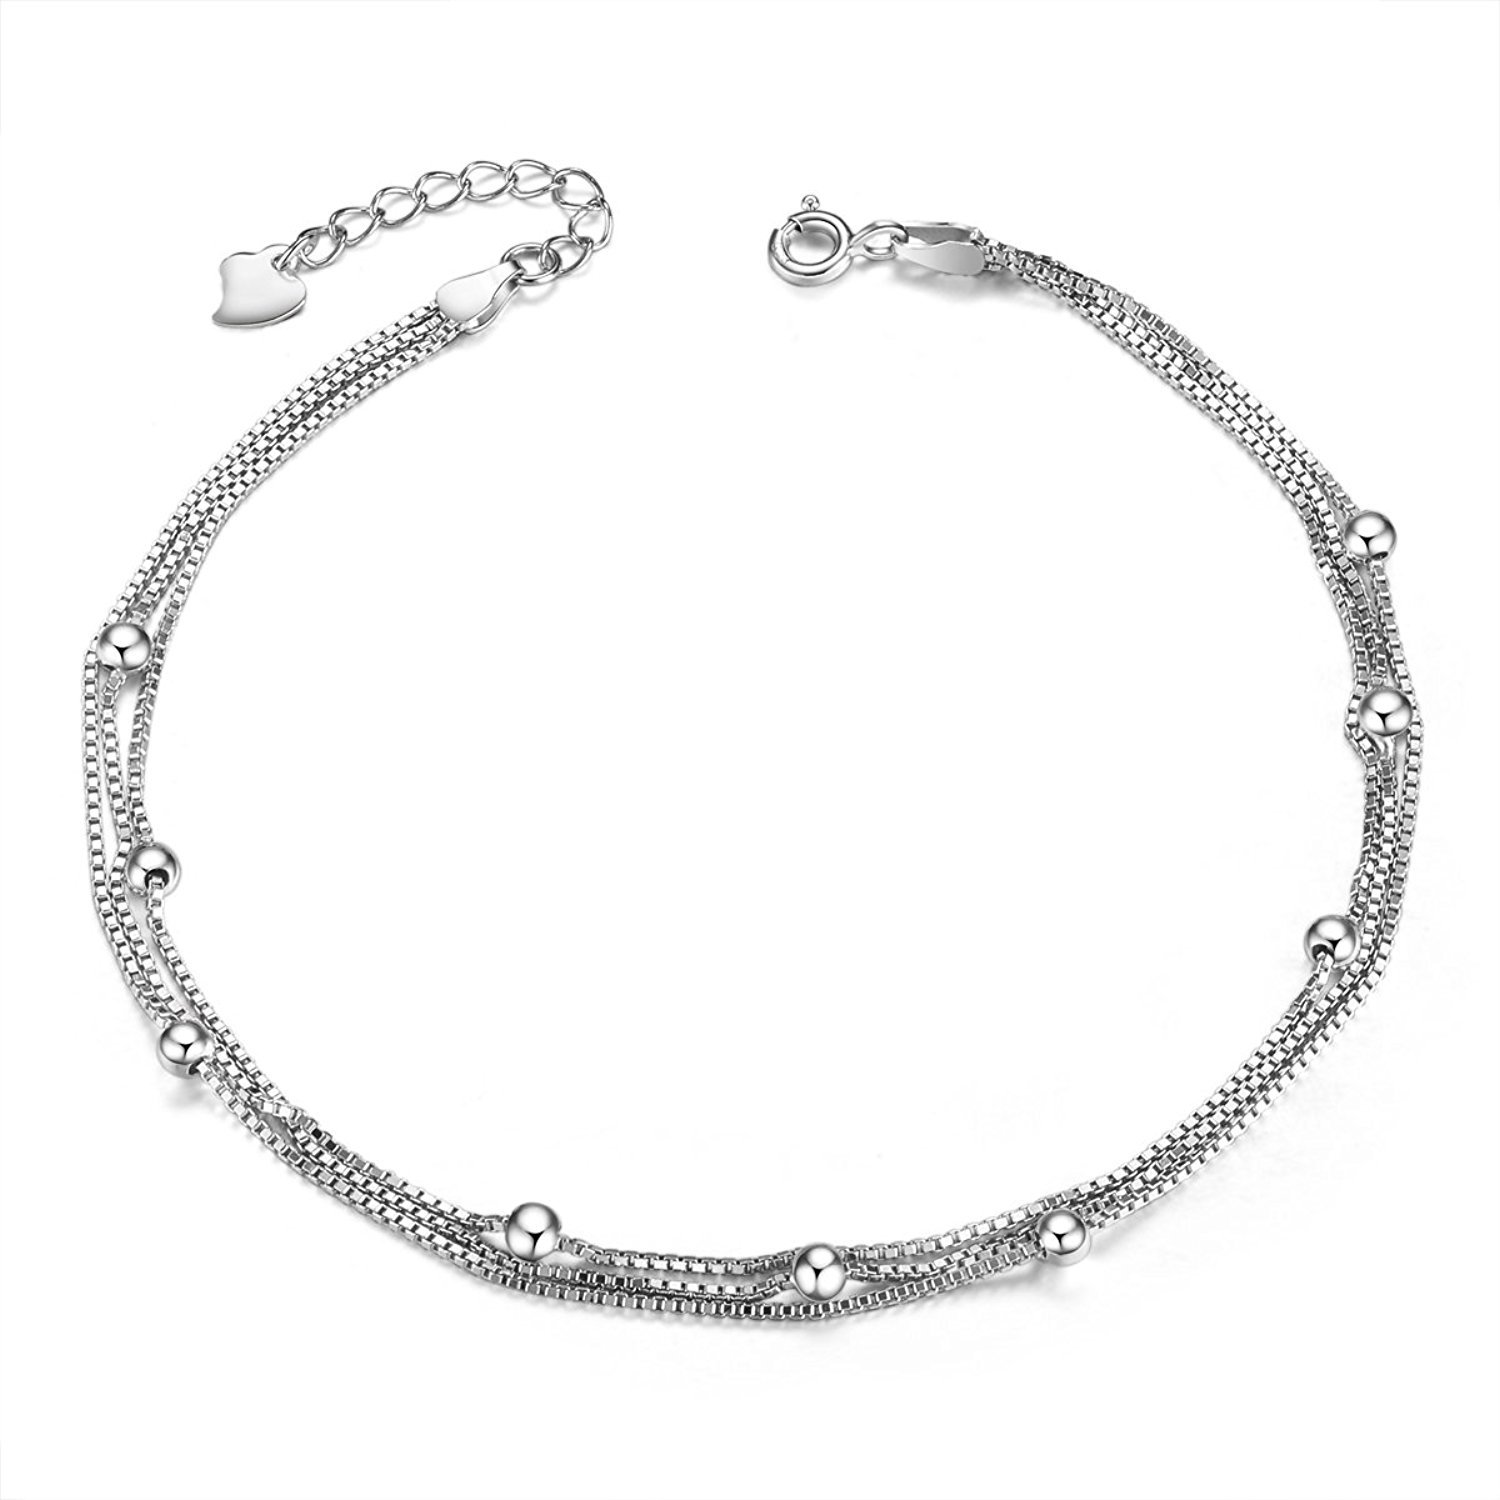 SHEGRACE 925 Sterling Silver Triple Layered Chain Anklets/Bracelet with Tiny Beads for Woman